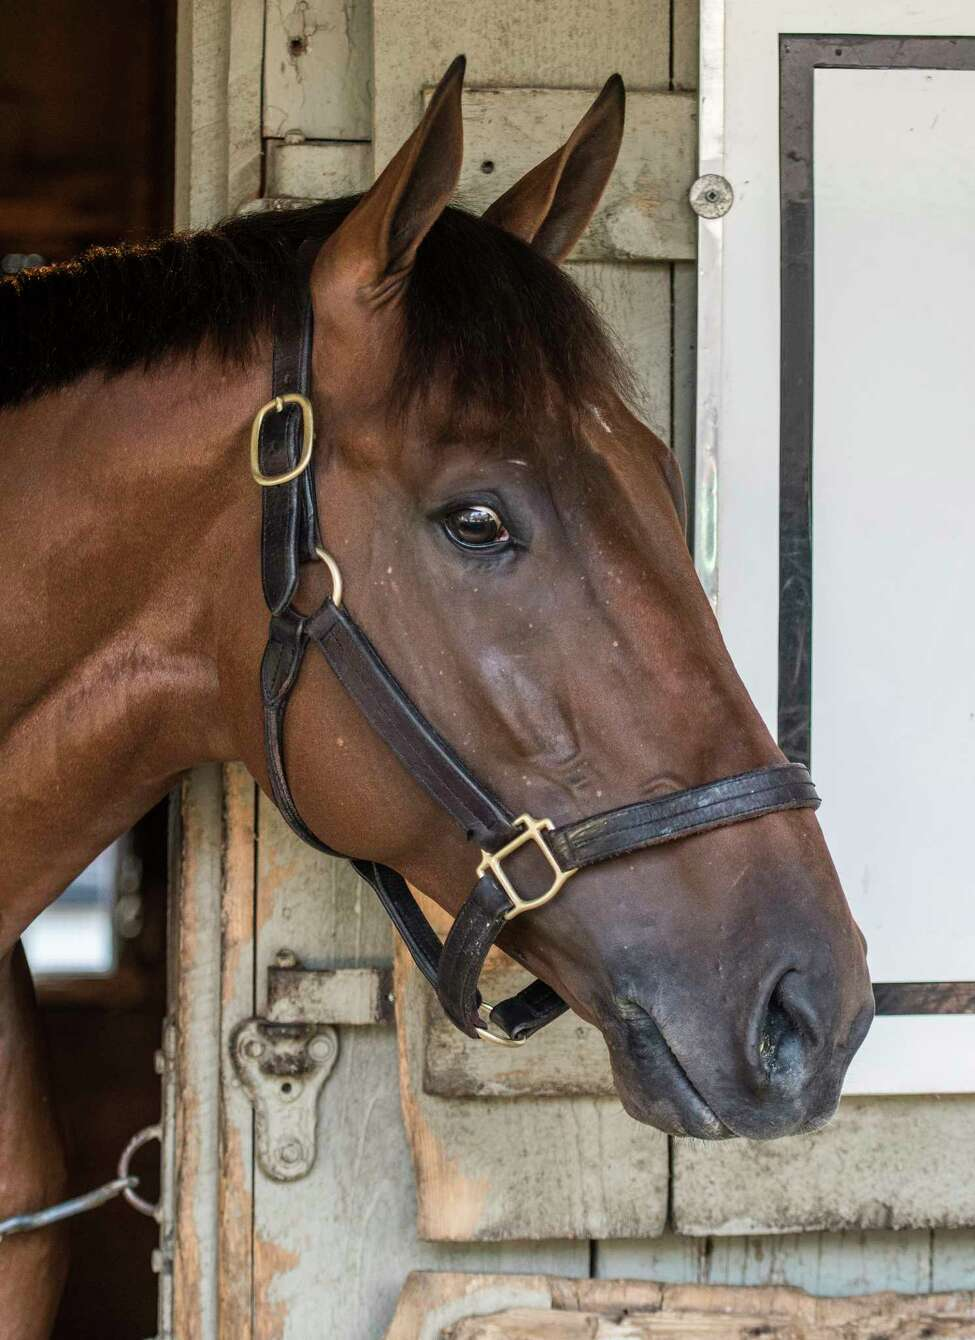 Potential Whiney Stakes entrant Keen Ice looks out of his stall in the Todd Pletcher training stable at the Oklahoma Training center Monday July 31, 2017 adjacent to the Saratoga Race Course in Saratoga Springs, N.Y. (Skip Dickstein/Times Union)